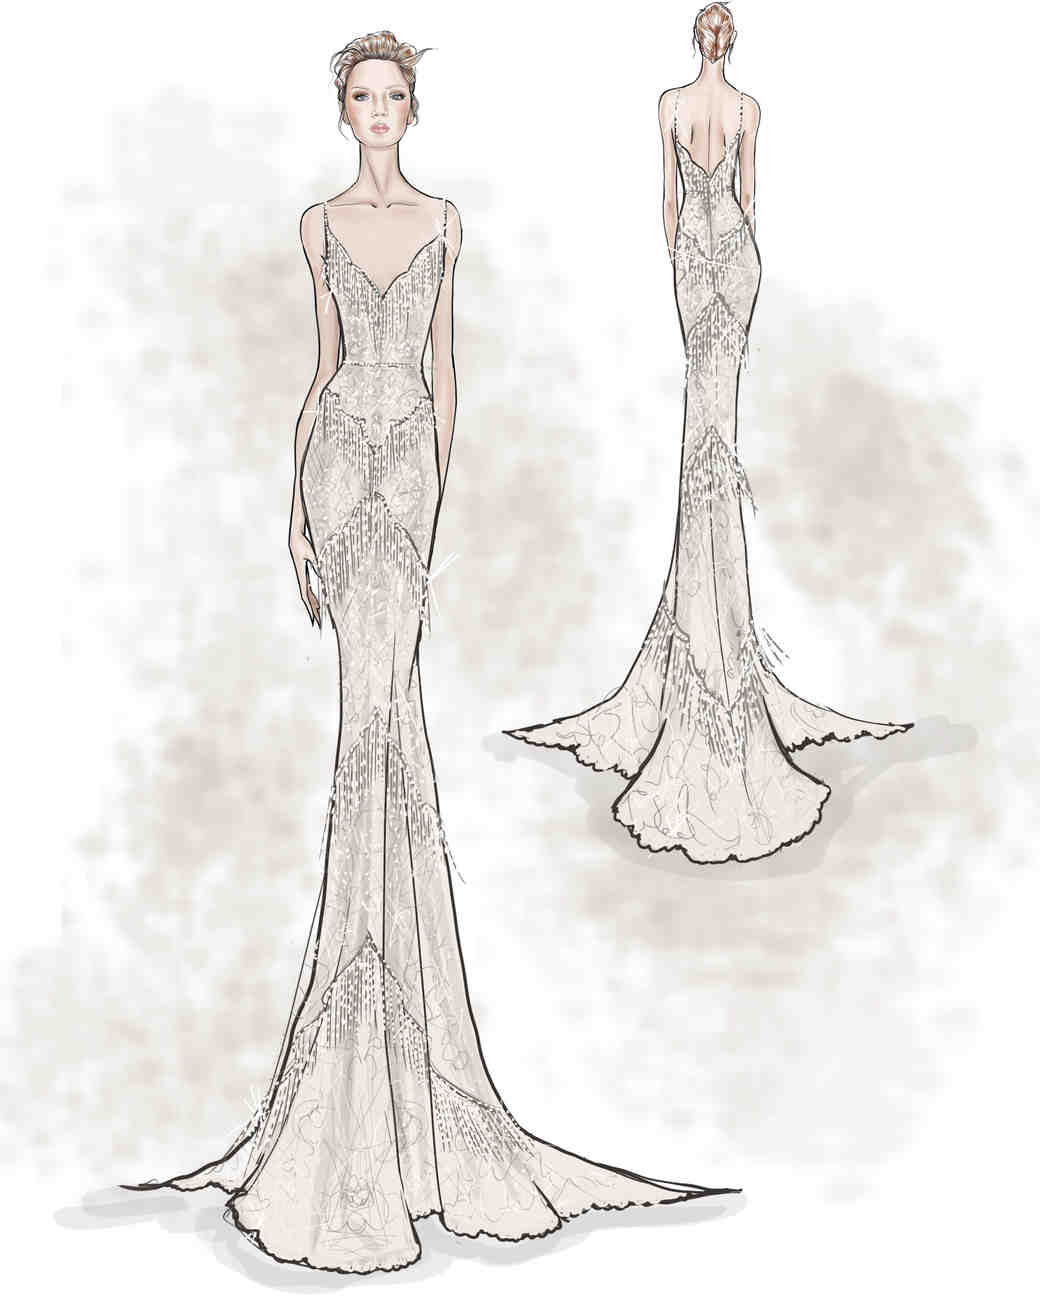 watters-fall-2017-exclusive-wedding-dress-sketch-rides-ferrera-0916.jpg